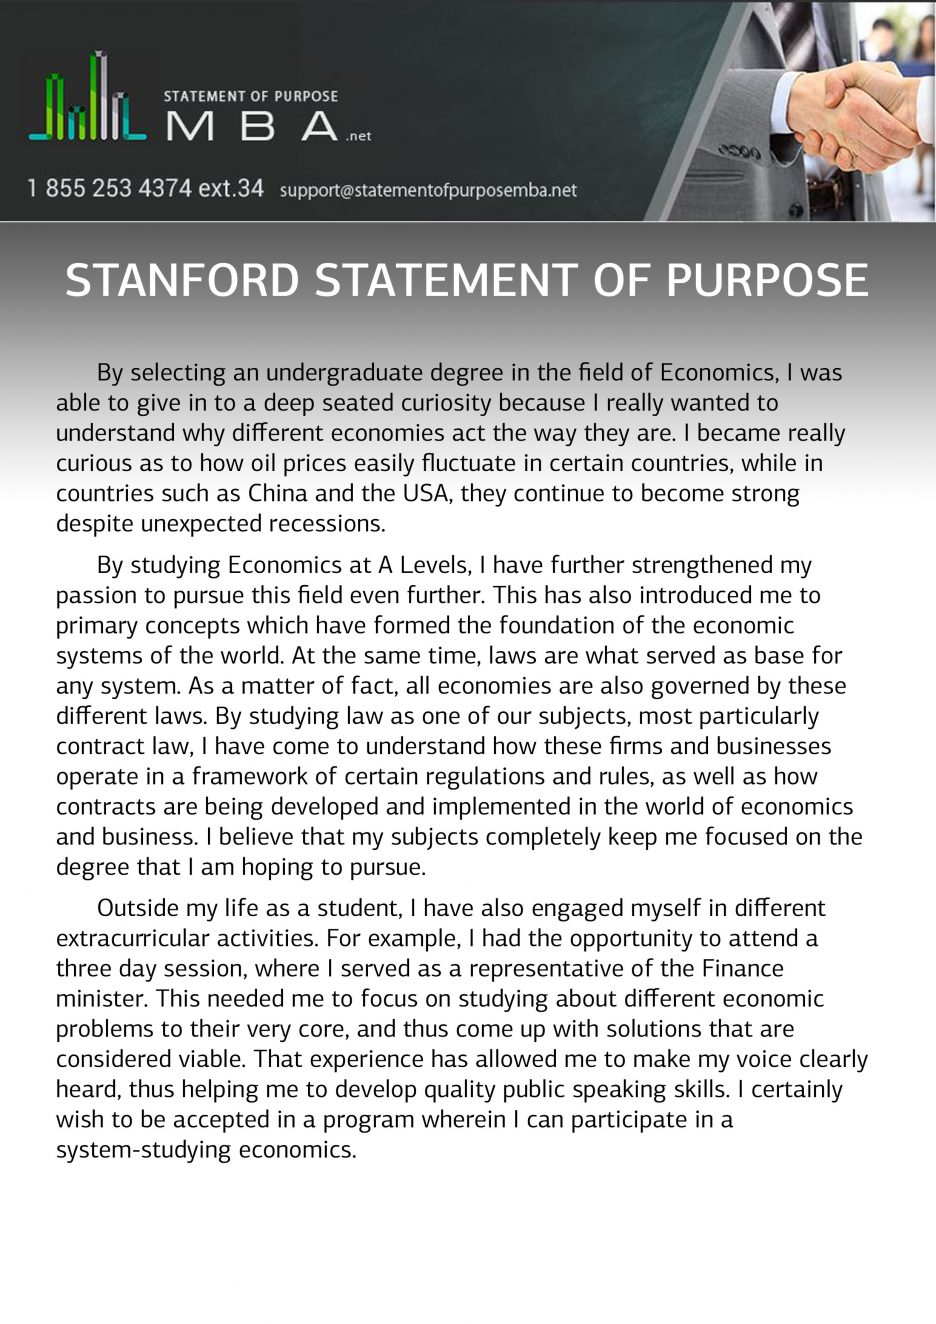 011 Stanford Essays Roommate Statement Purpose Sample Essay Accepted Examples That Worked Tips Example Prompt College Confidential Of Advice Reddit Facebook Stunning Ocean Full